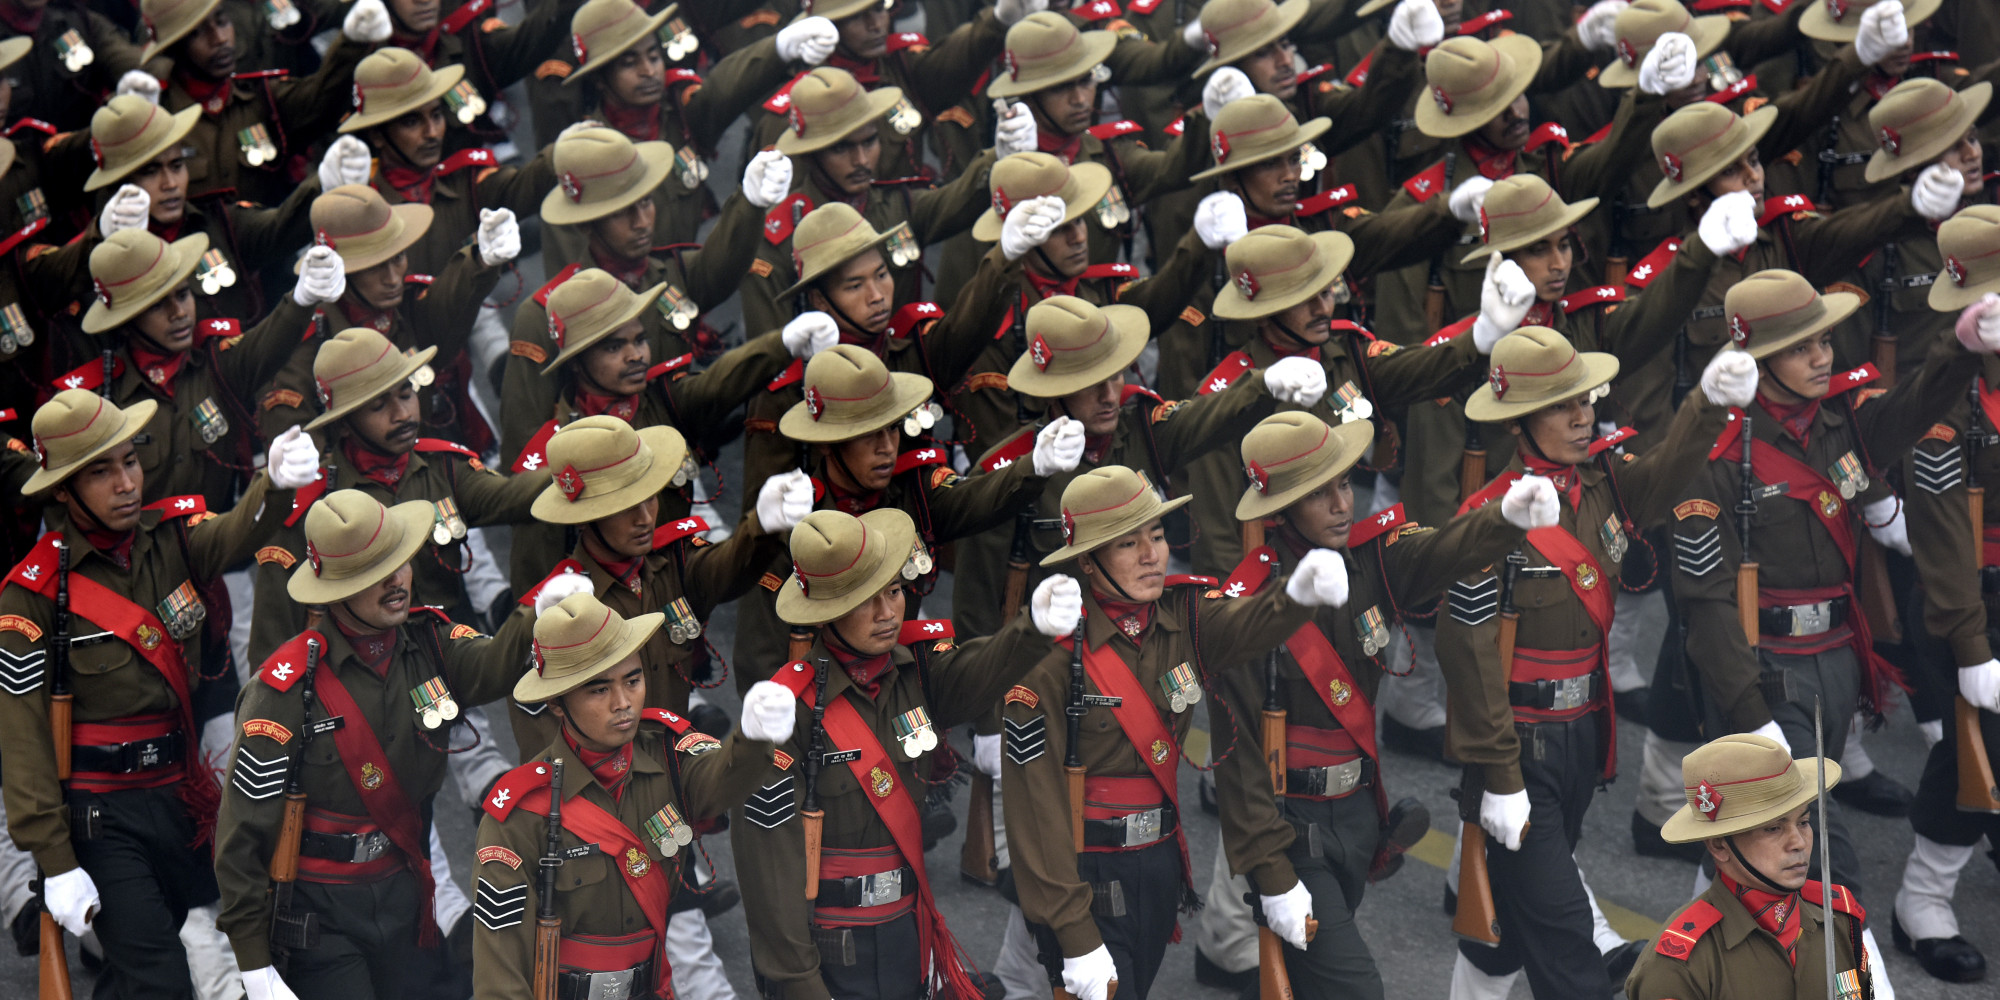 http://i.huffpost.com/gen/3864294/images/o-REPUBLIC-DAY-PARADE-facebook.jpg